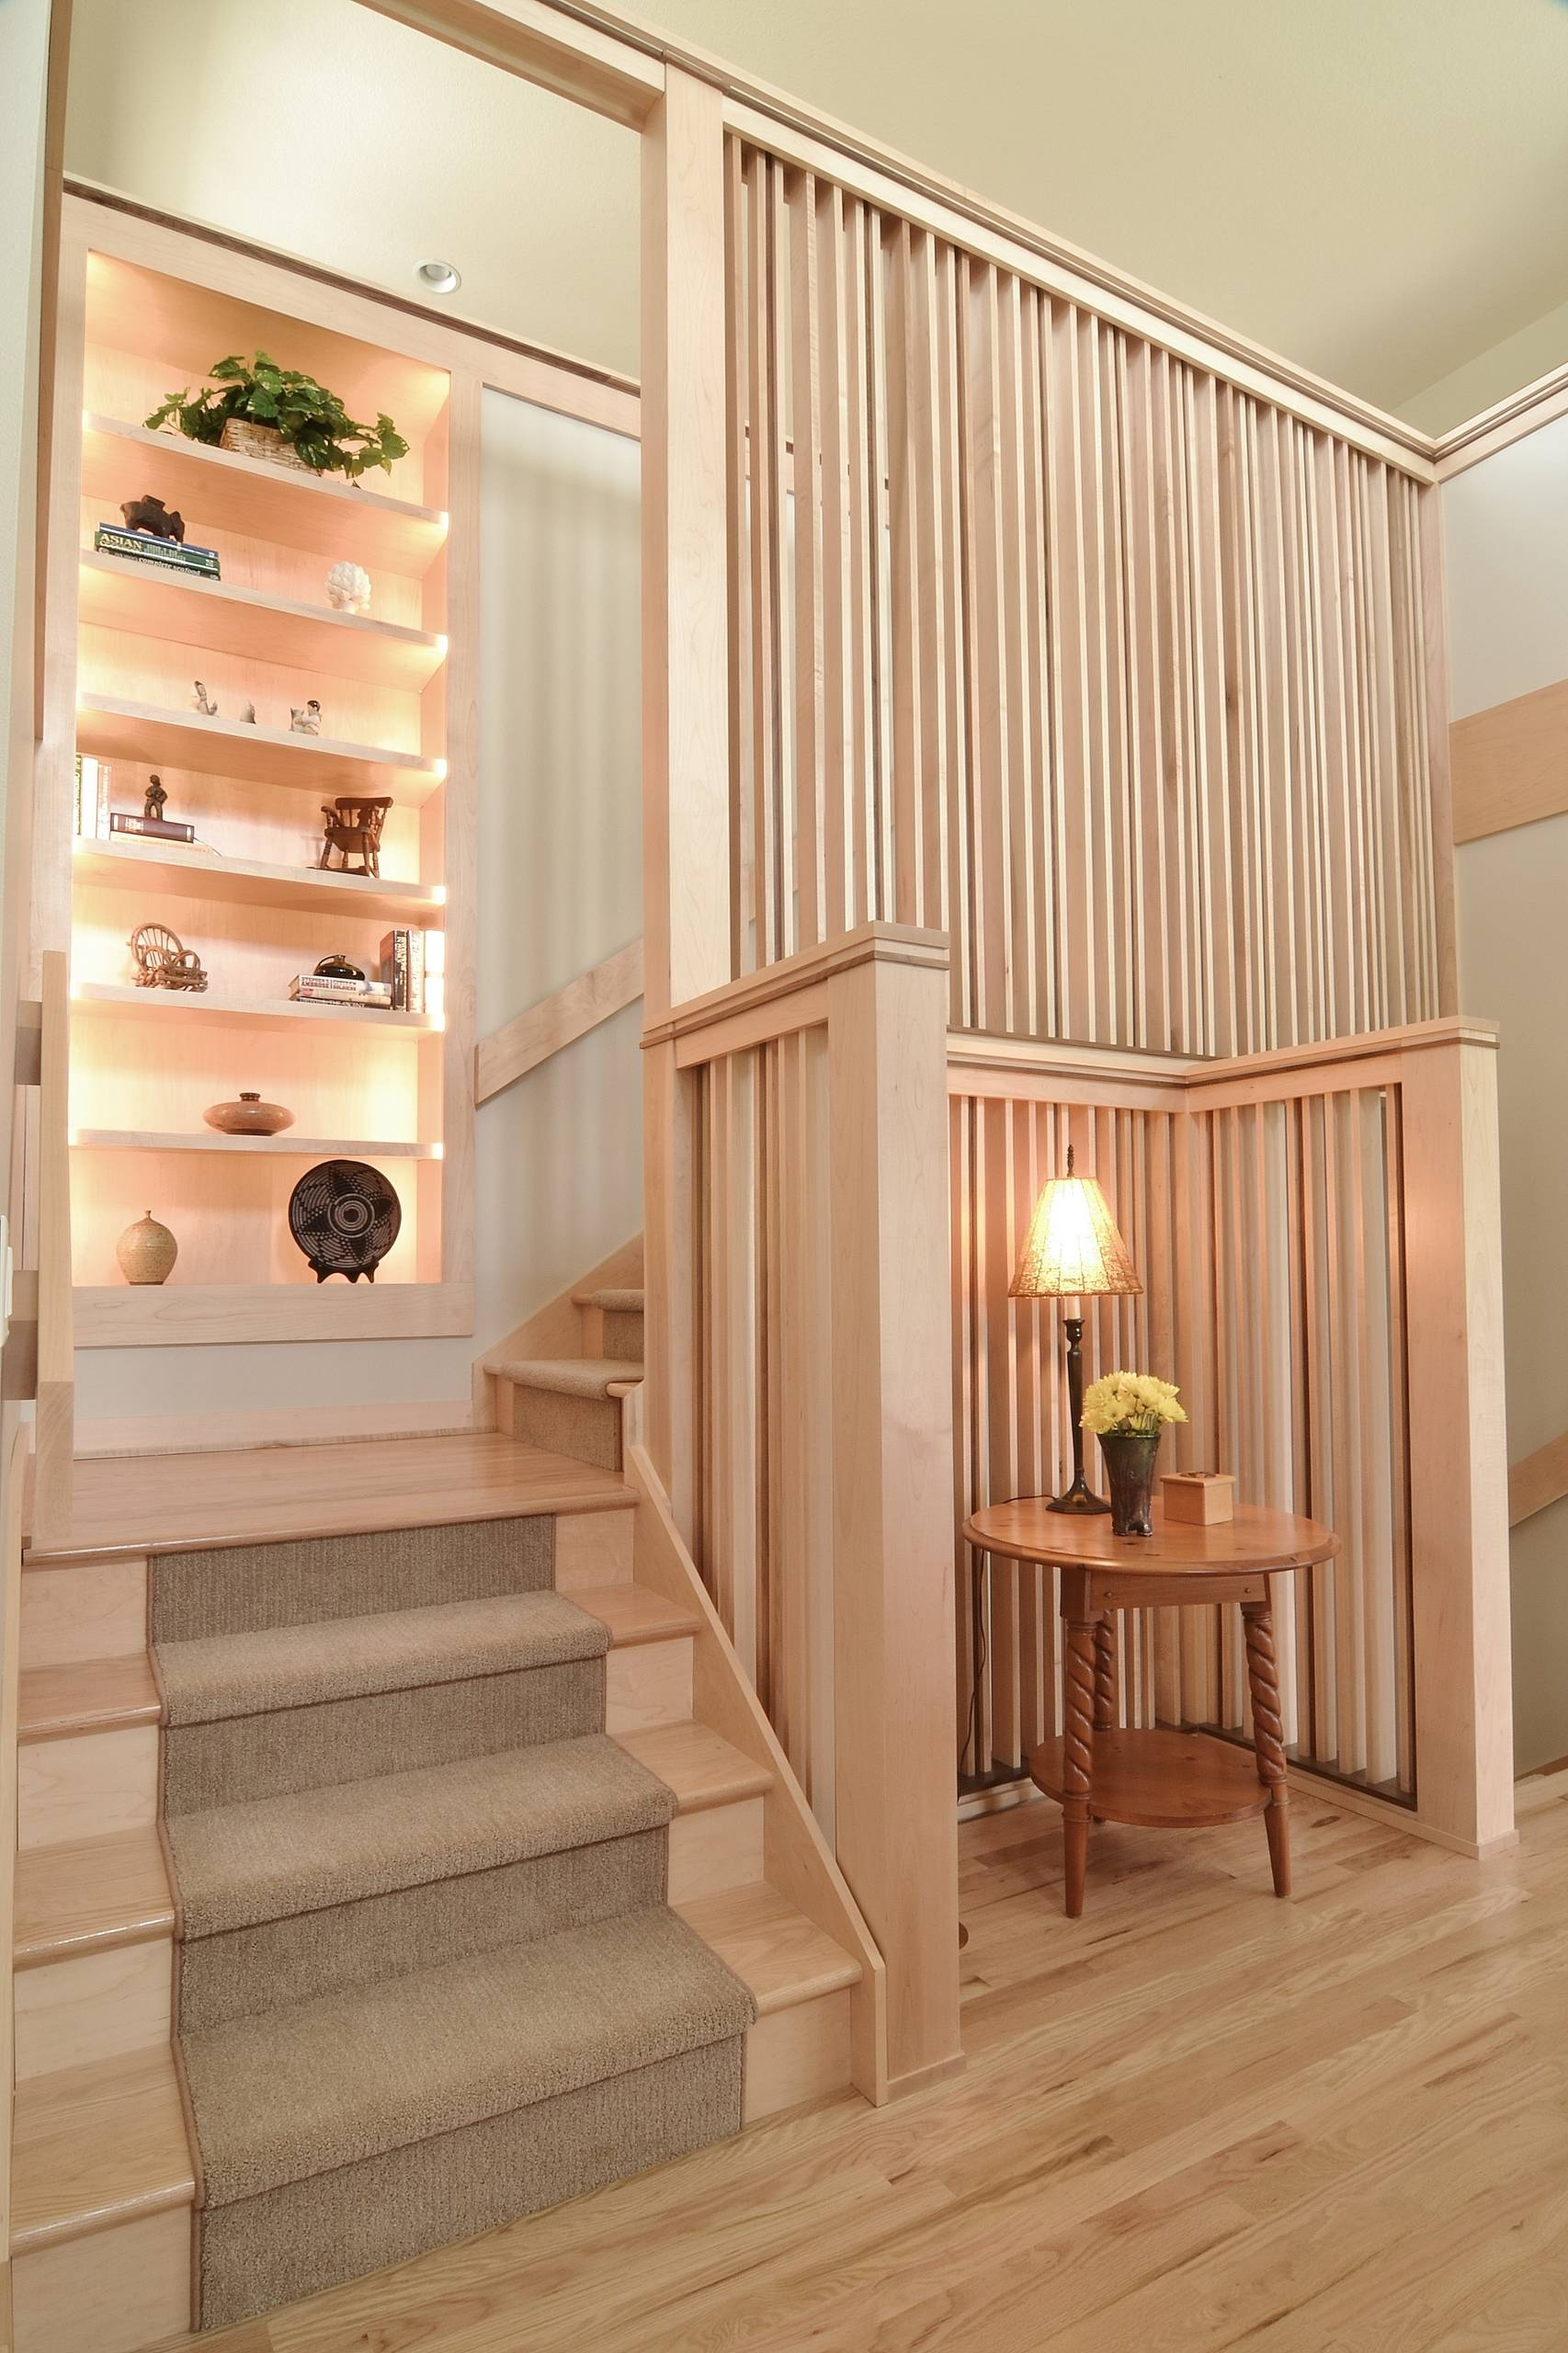 Stair Partition Houzz   Partition Of Stairs In Living Room   Lobby   Storage   Open Plan   Divider   Wood Paneling